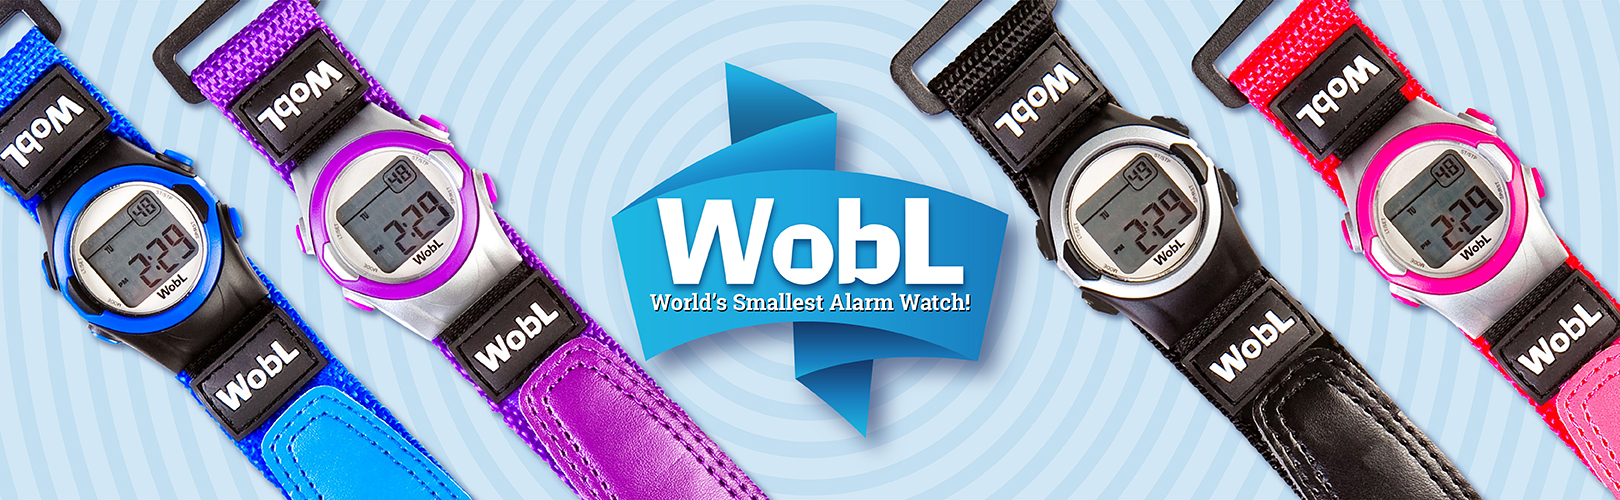 WobL vibrating alarm watch in four colors.